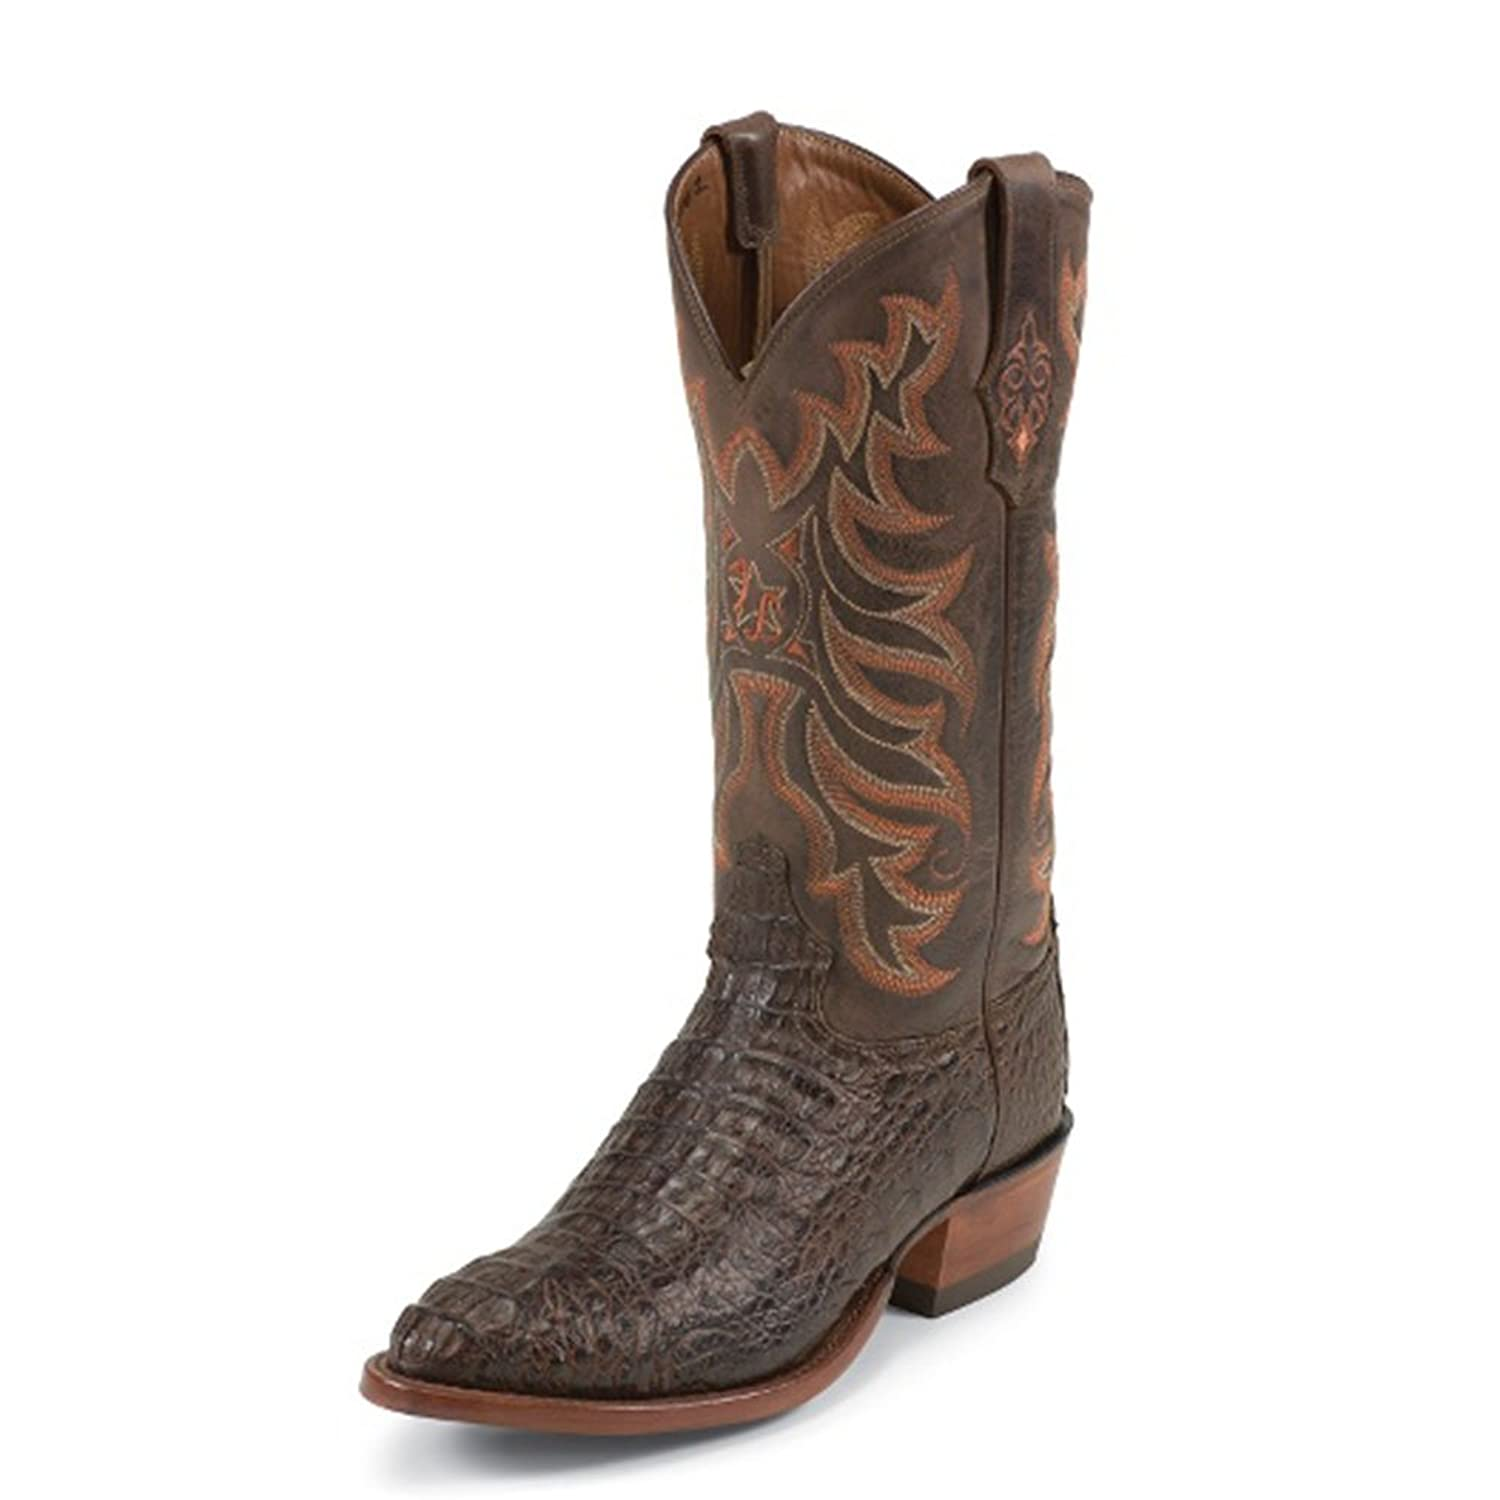 013b709f30d46 Tony Lama Men's Reydon Chocolate 13